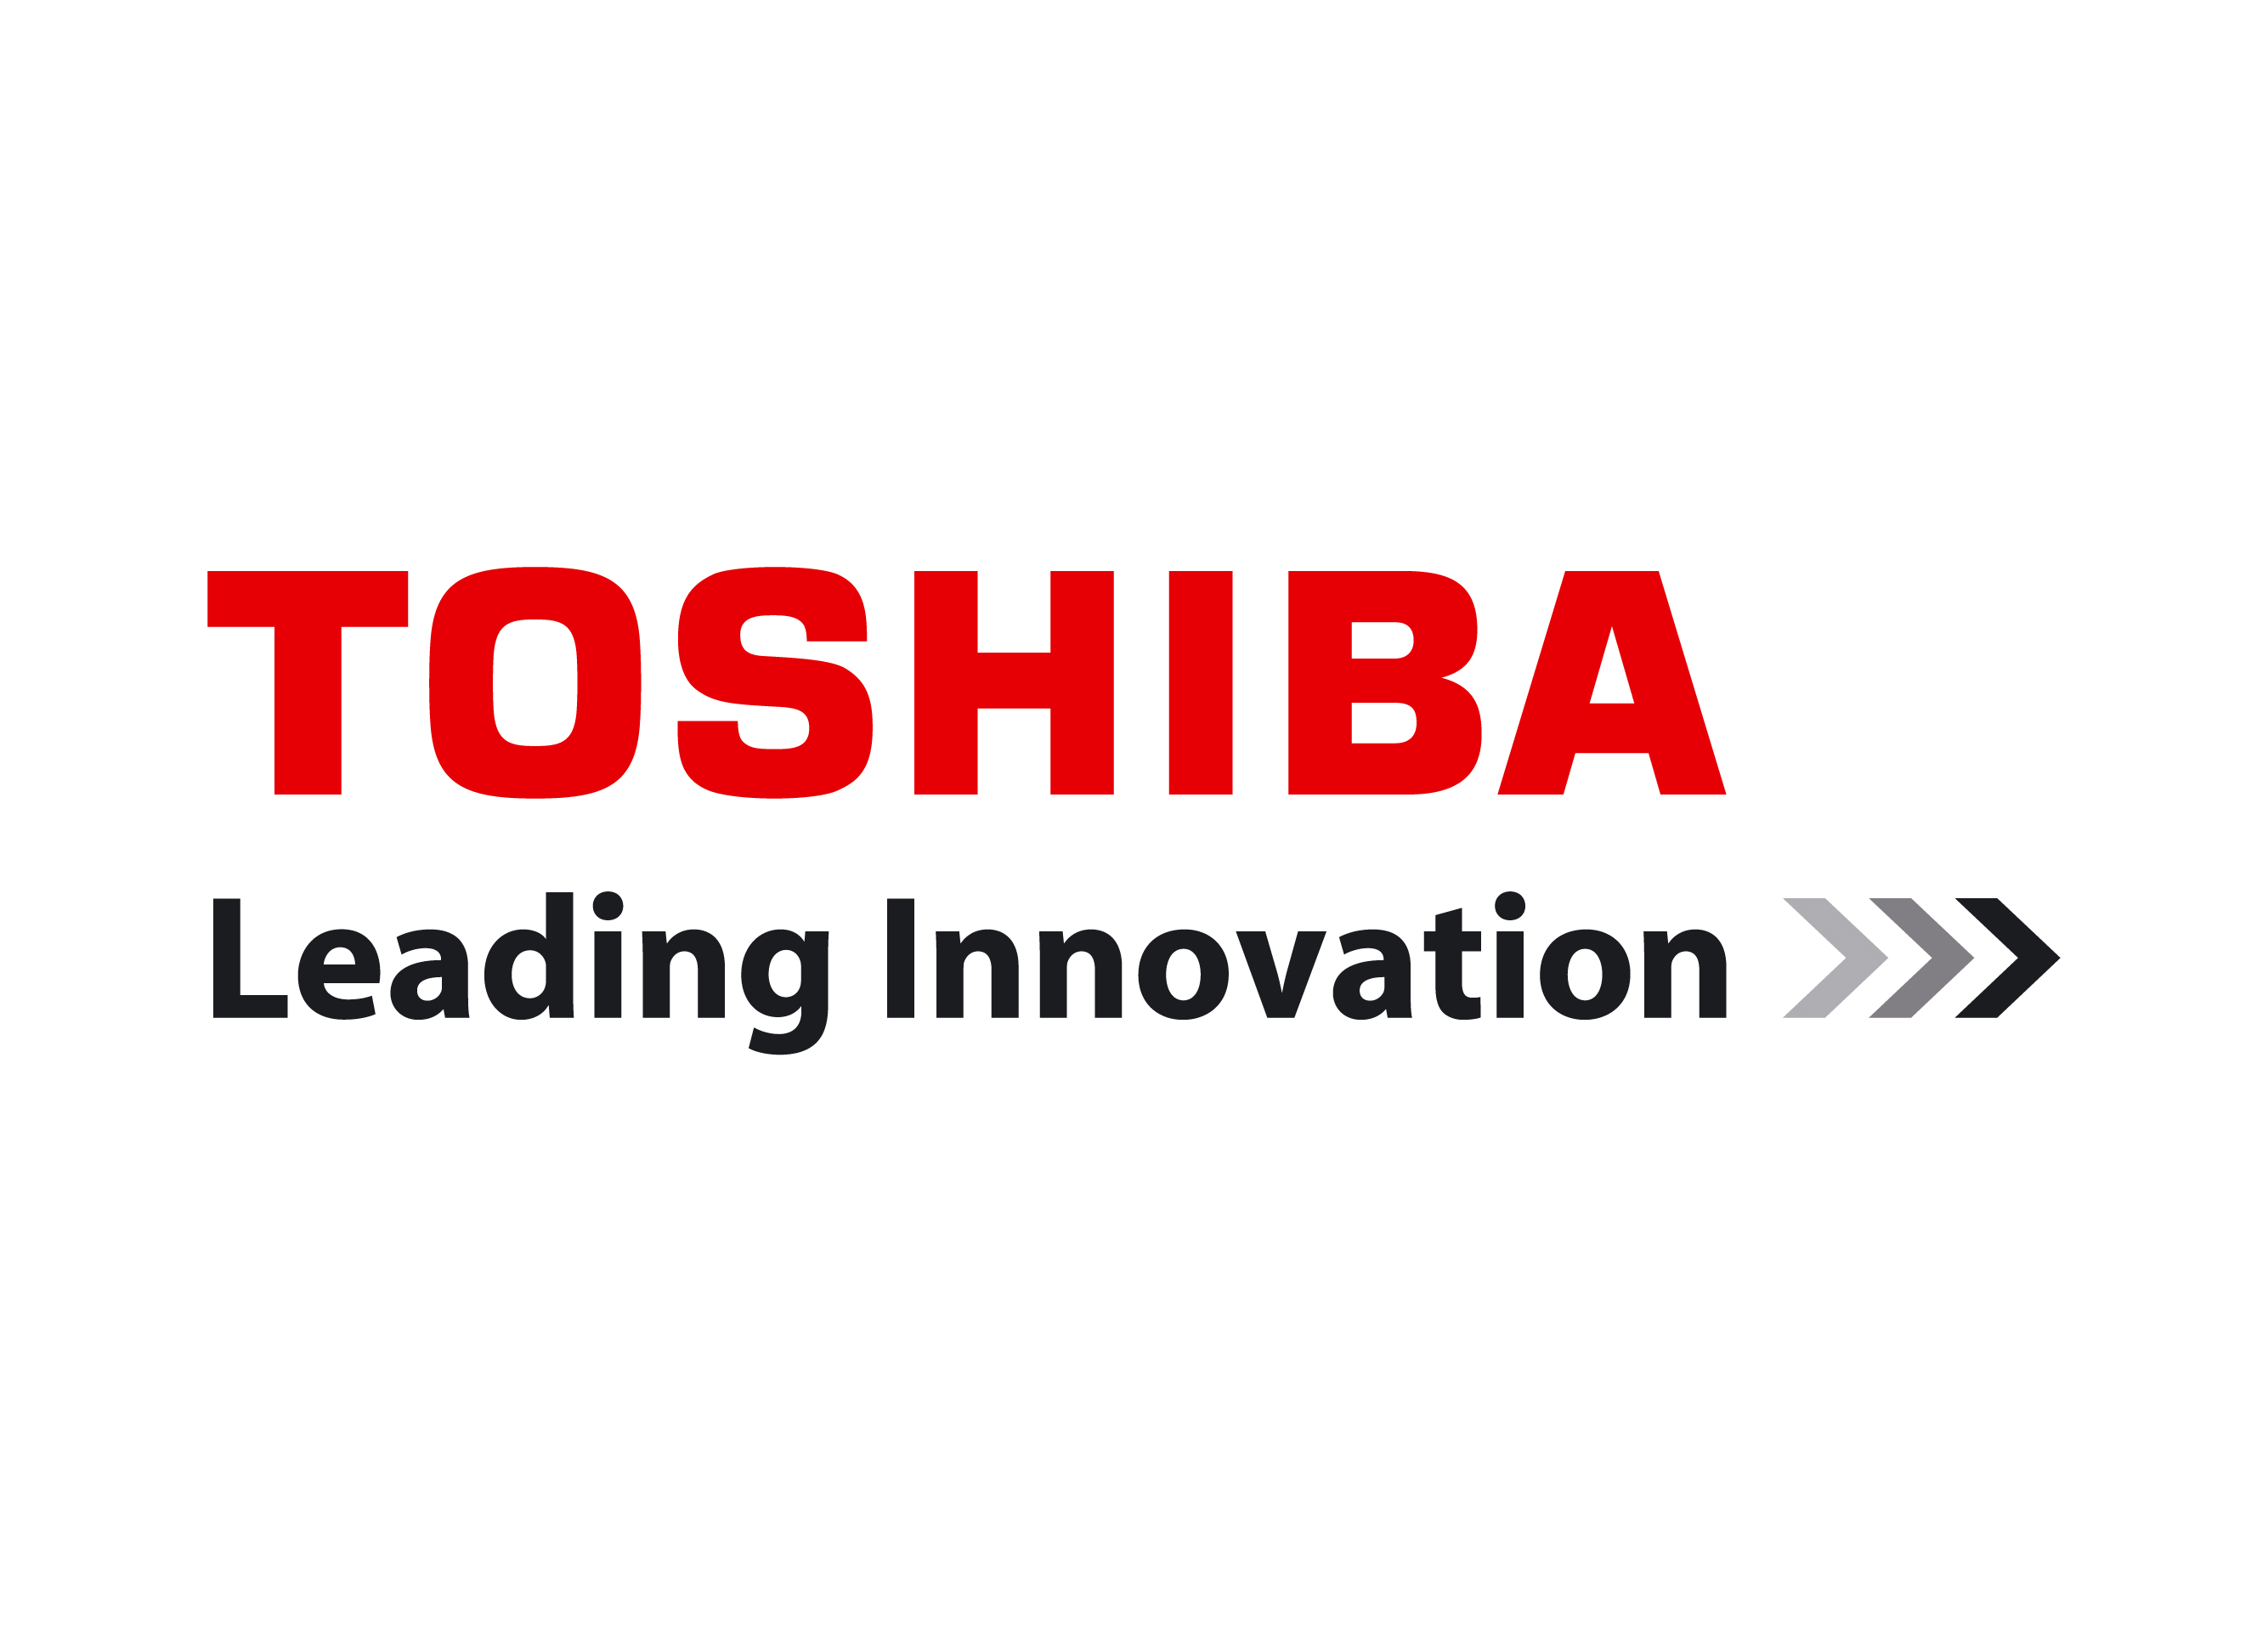 Extended Service Plan - Extended service agreement - parts and labor ( for desktop with 1 year warranty ) - 3 years ( 2nd/3rd/4th year ) - carry-in - for Toshiba DX730 DX730-00J DX730-00J00J DX730-01C DX730-01C011 DX730-ST6N02